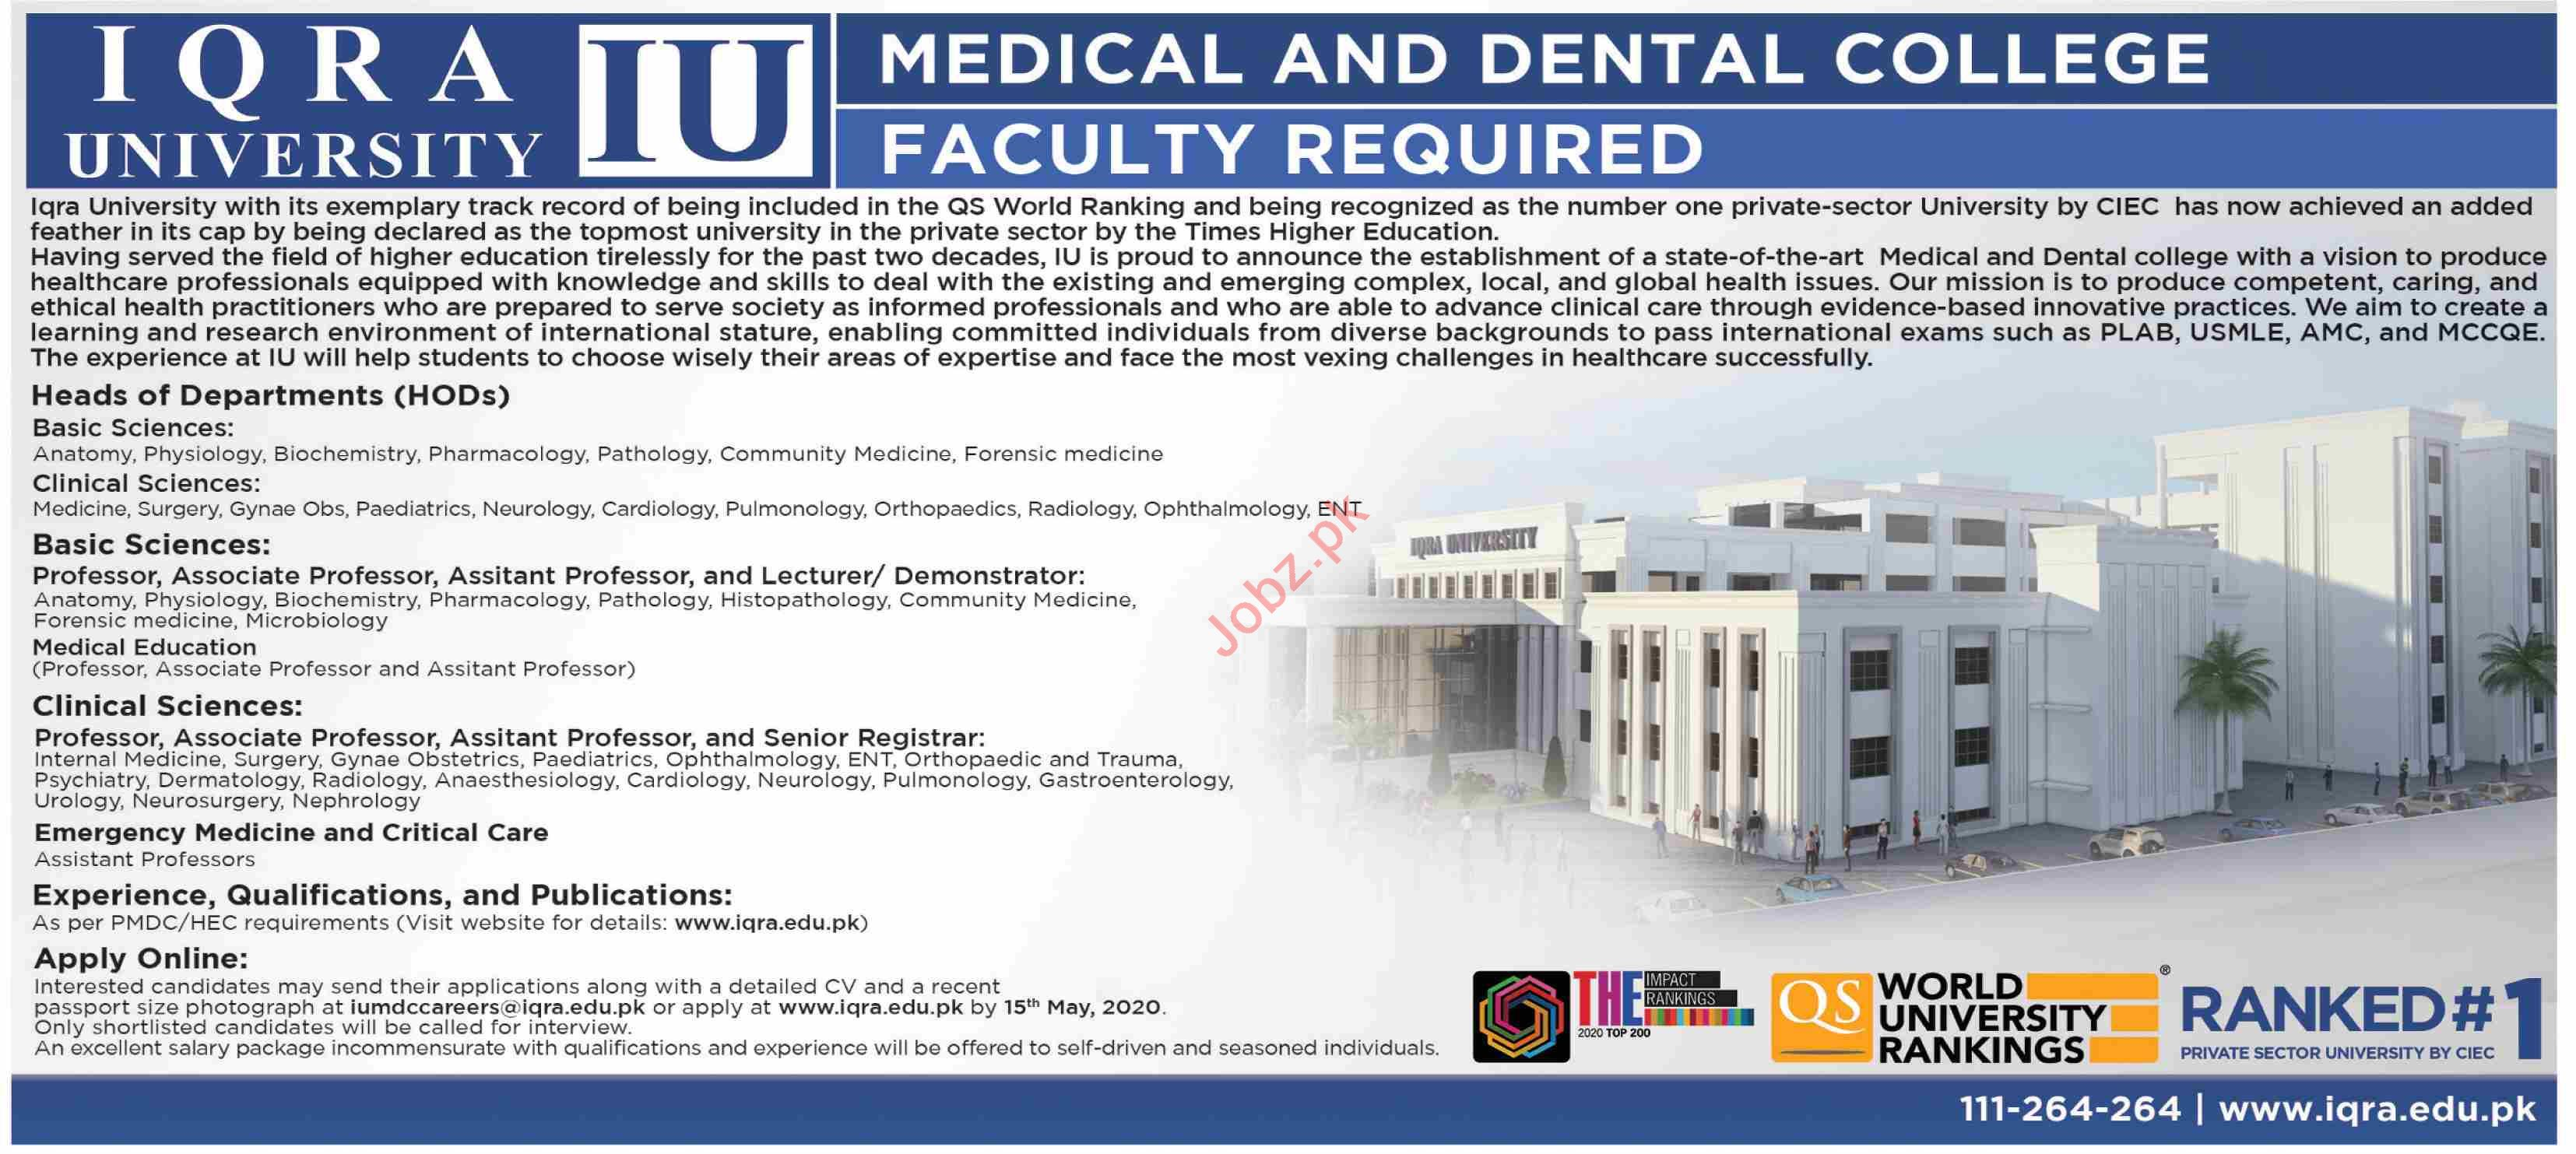 Iqra University Medical & Dental College Faculty Jobs 2020